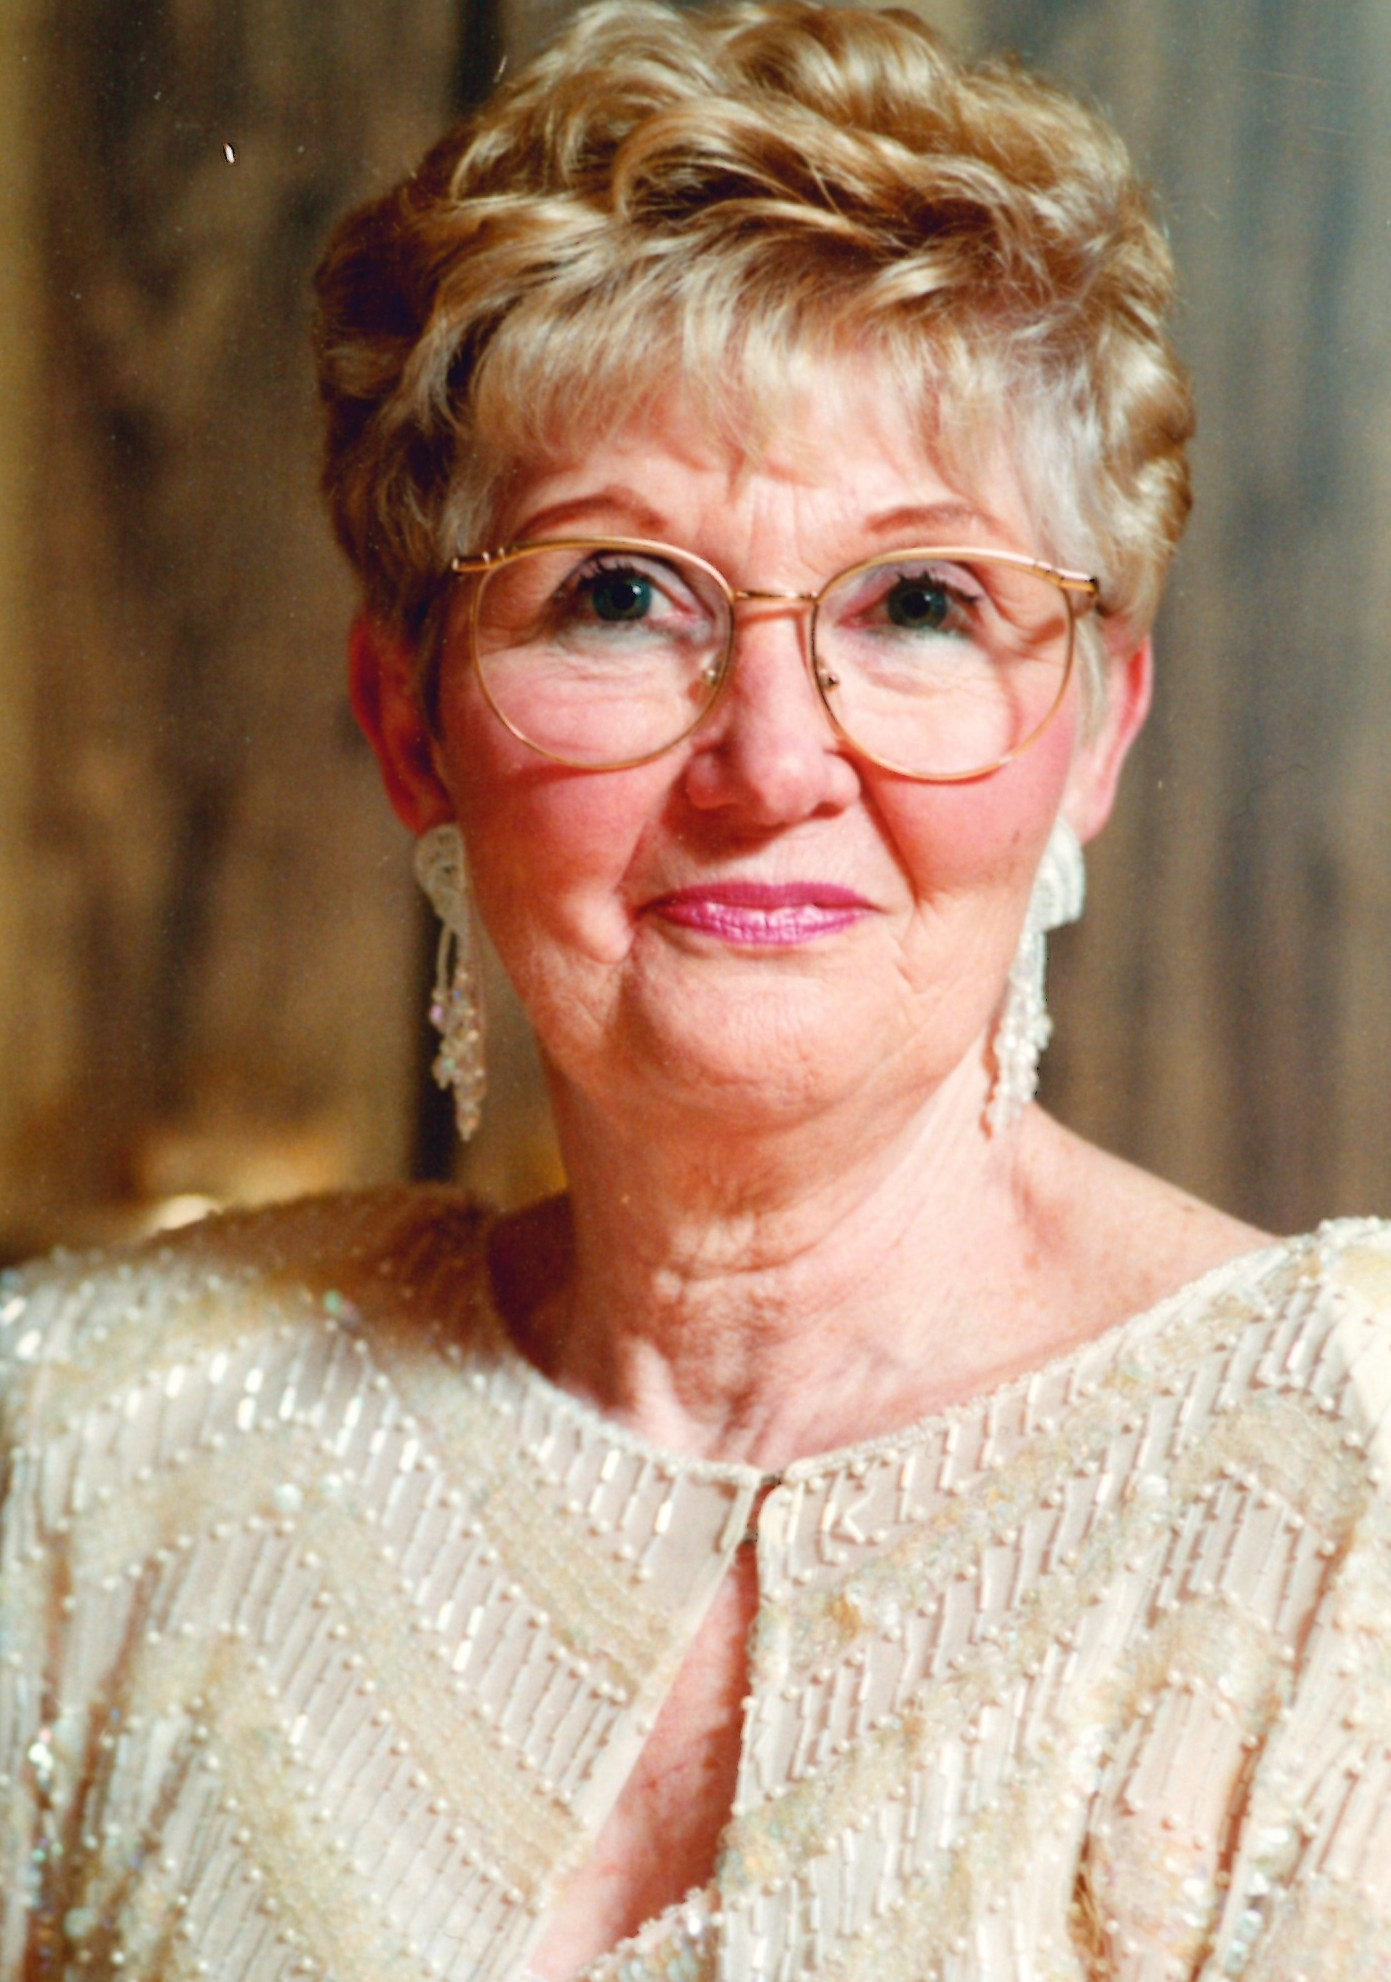 VAN DEN NEUCKER: Barbara Ann (Marshall) of Clinton